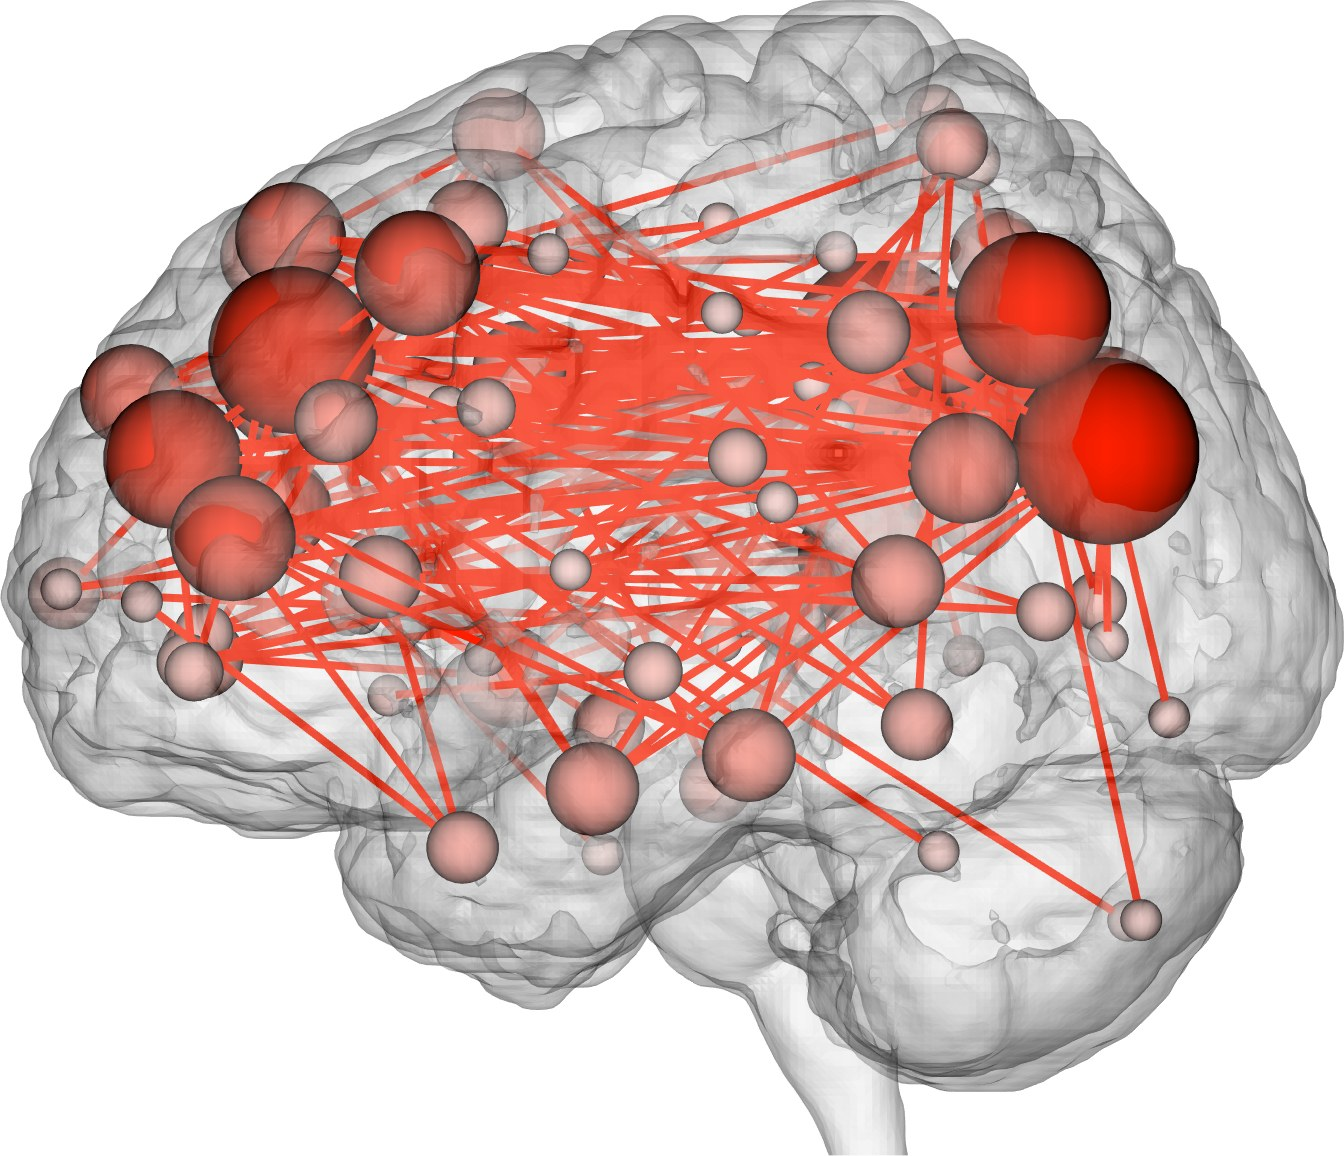 Recent Survey says that Smart People have a Special Social Network in their Brains